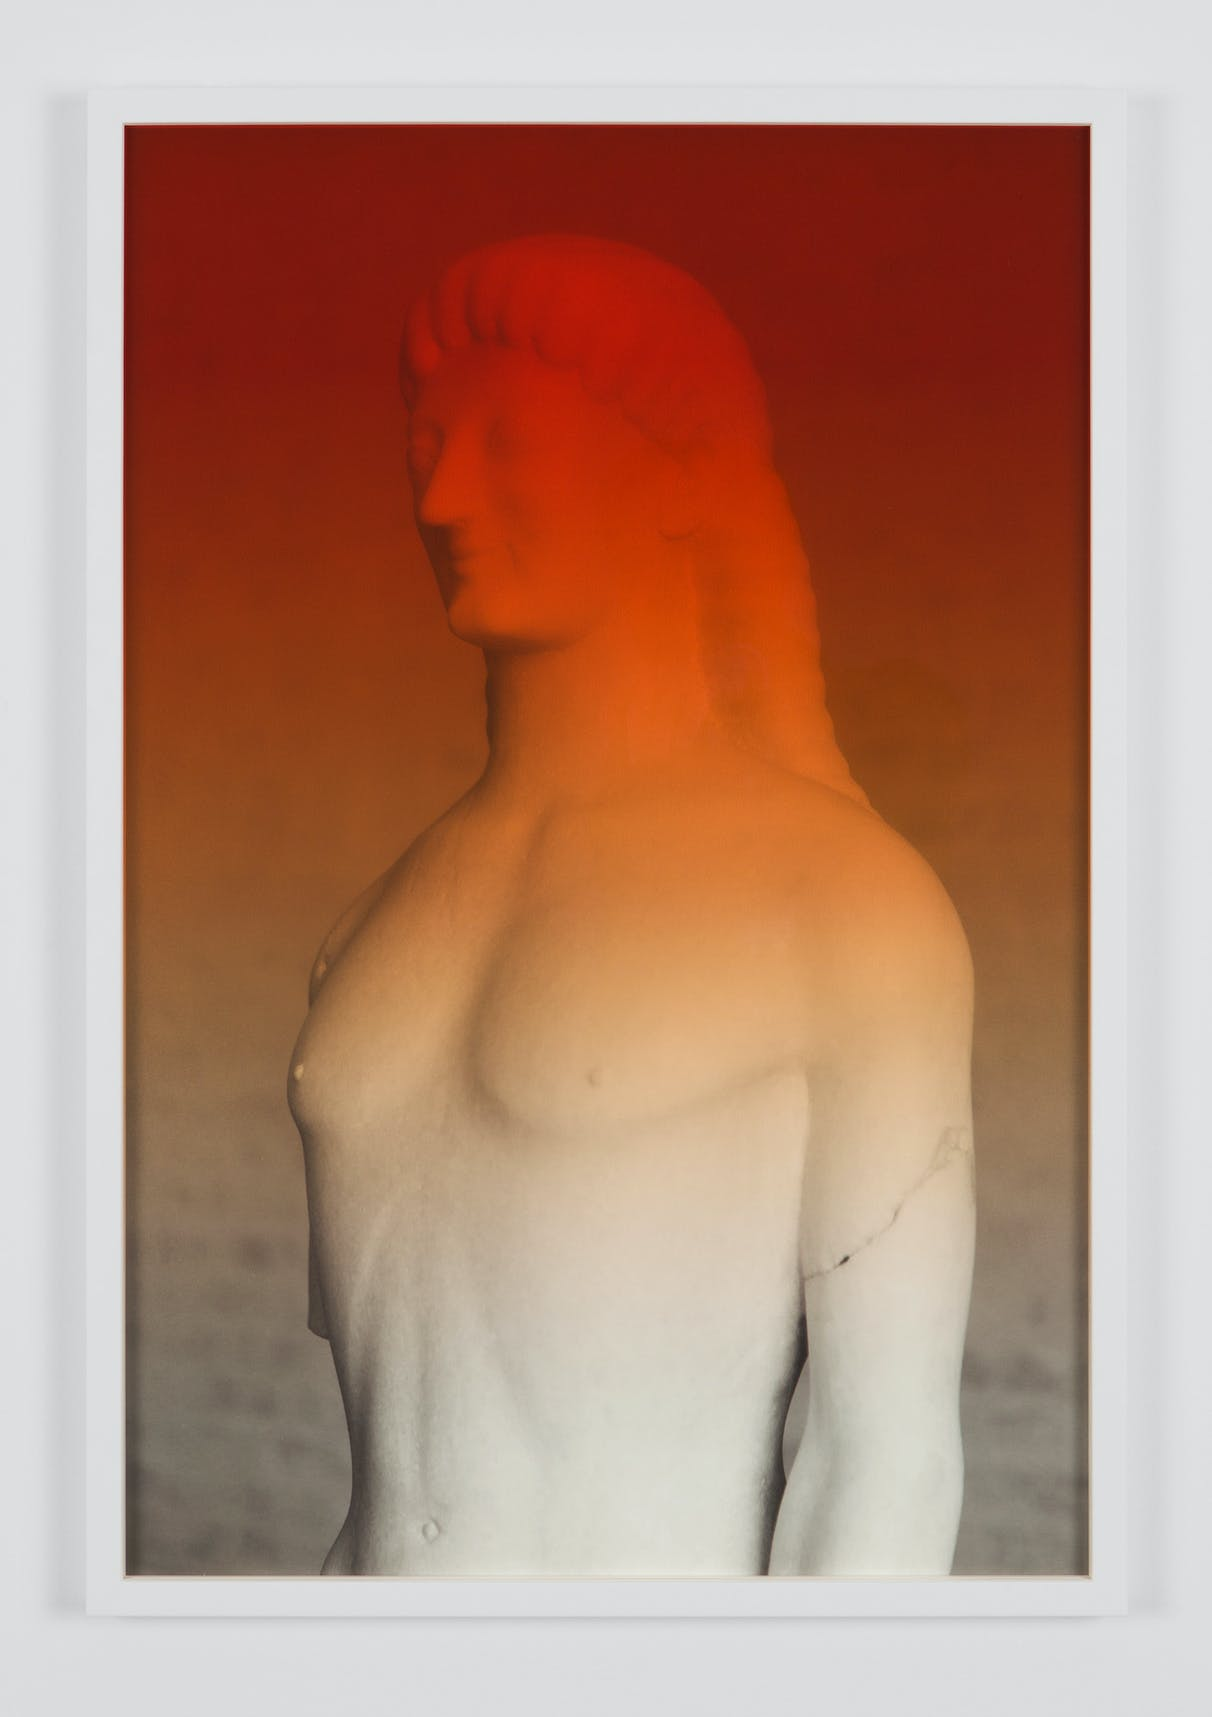 Espen Gleditsch Kouros of Tenea 2017 40x60 cm archival pigment print foil on glass